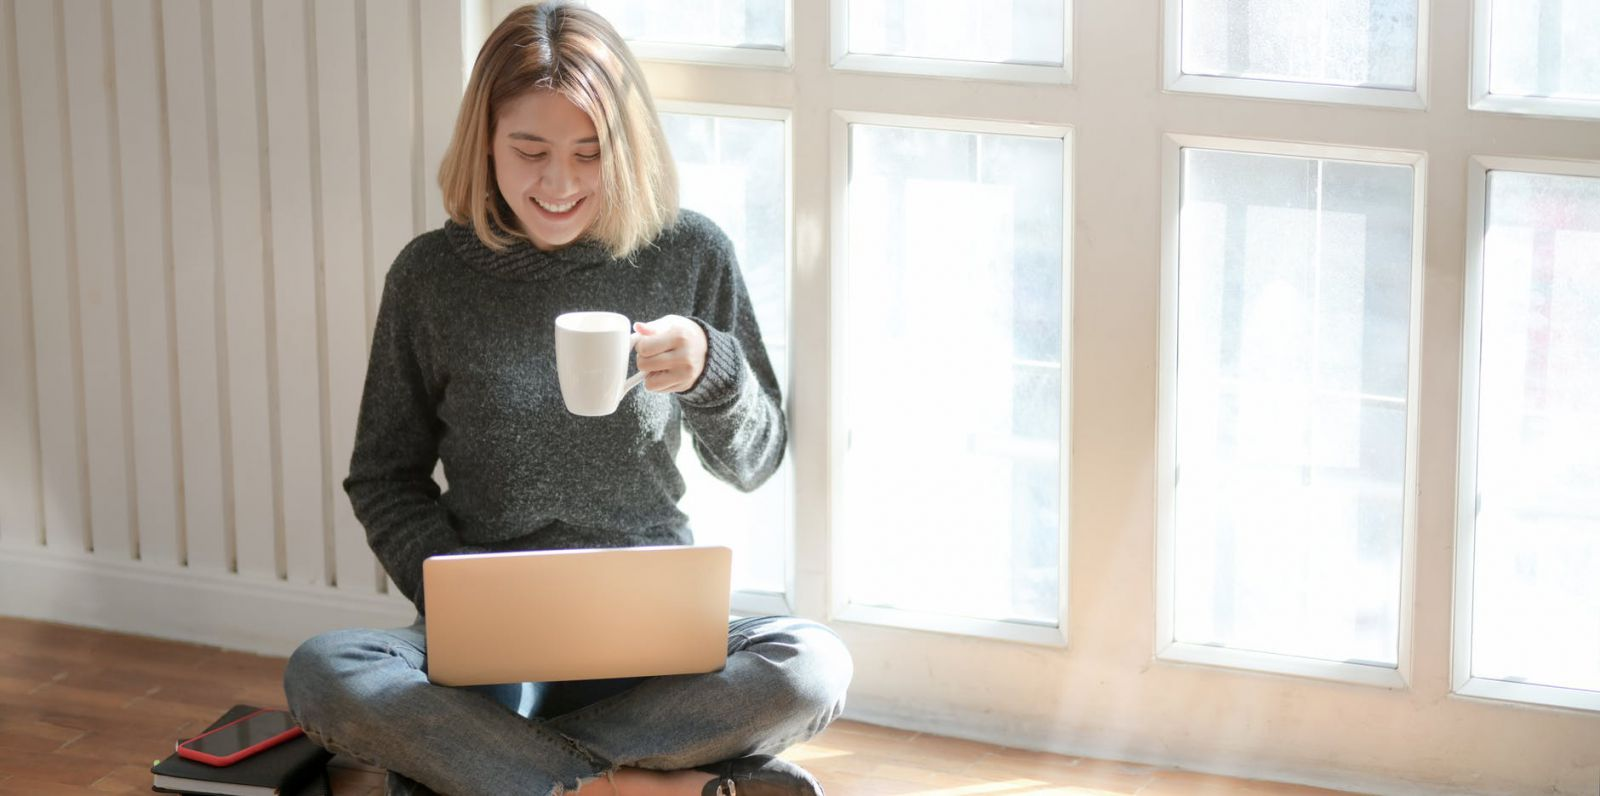 A woman drinking coffee while searching on her laptop